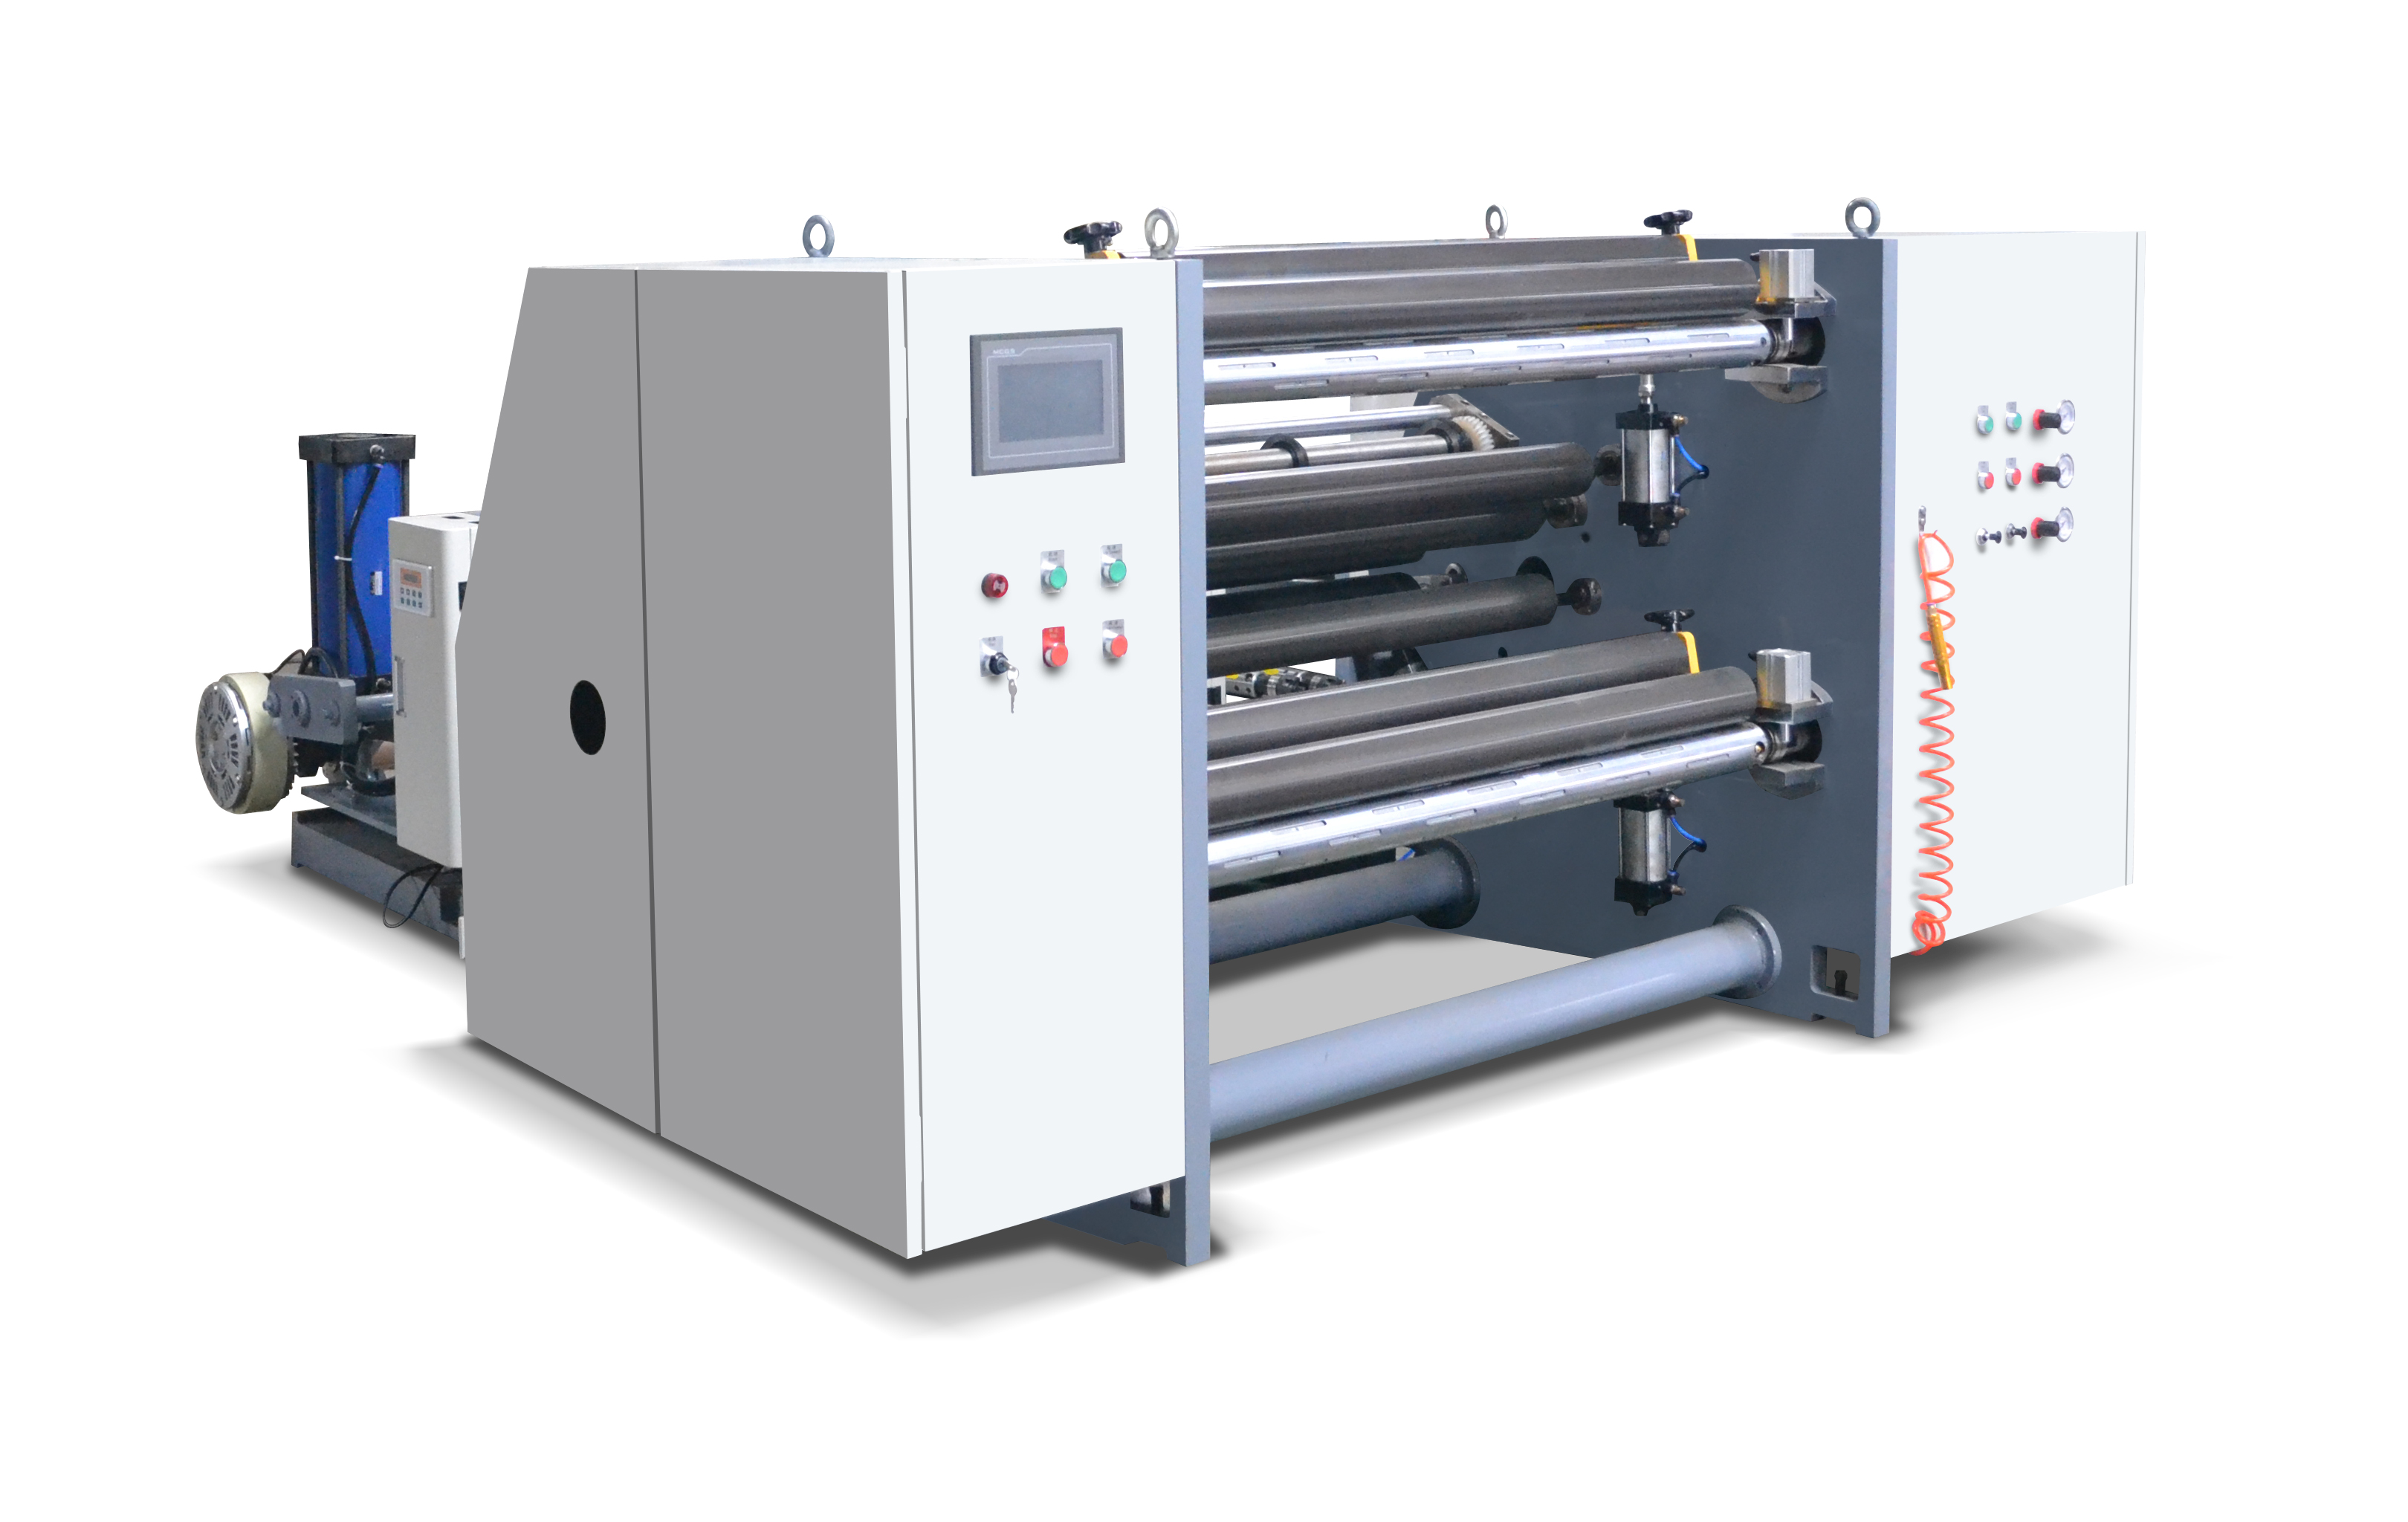 Slitting machine manufacturers analyze the development of the packaging industry